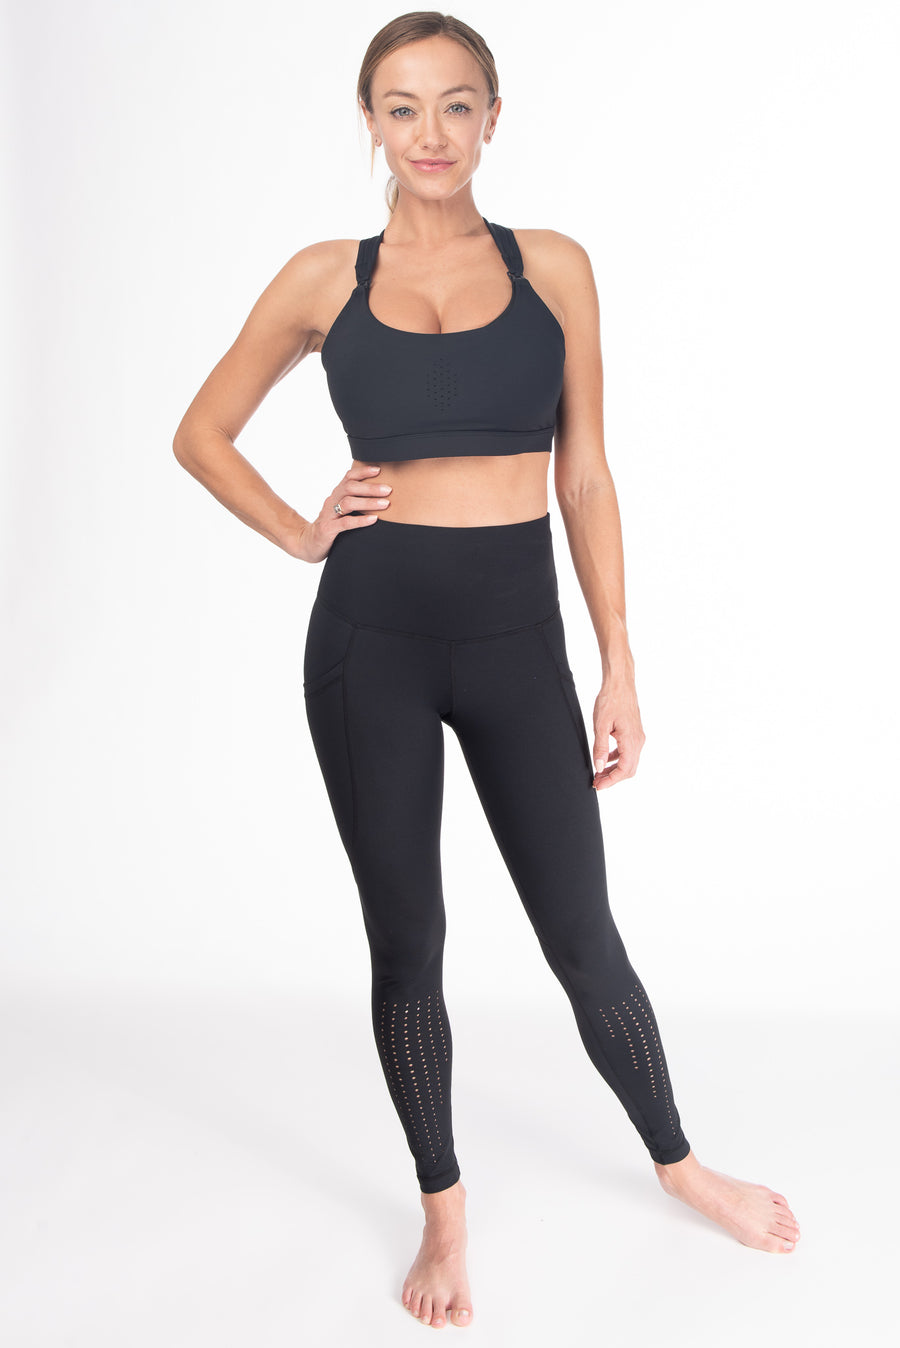 Chloe 3 Running Nursing Sports Bra, black, strappy back, supportive, stylish, mid high impact, mid high coverage